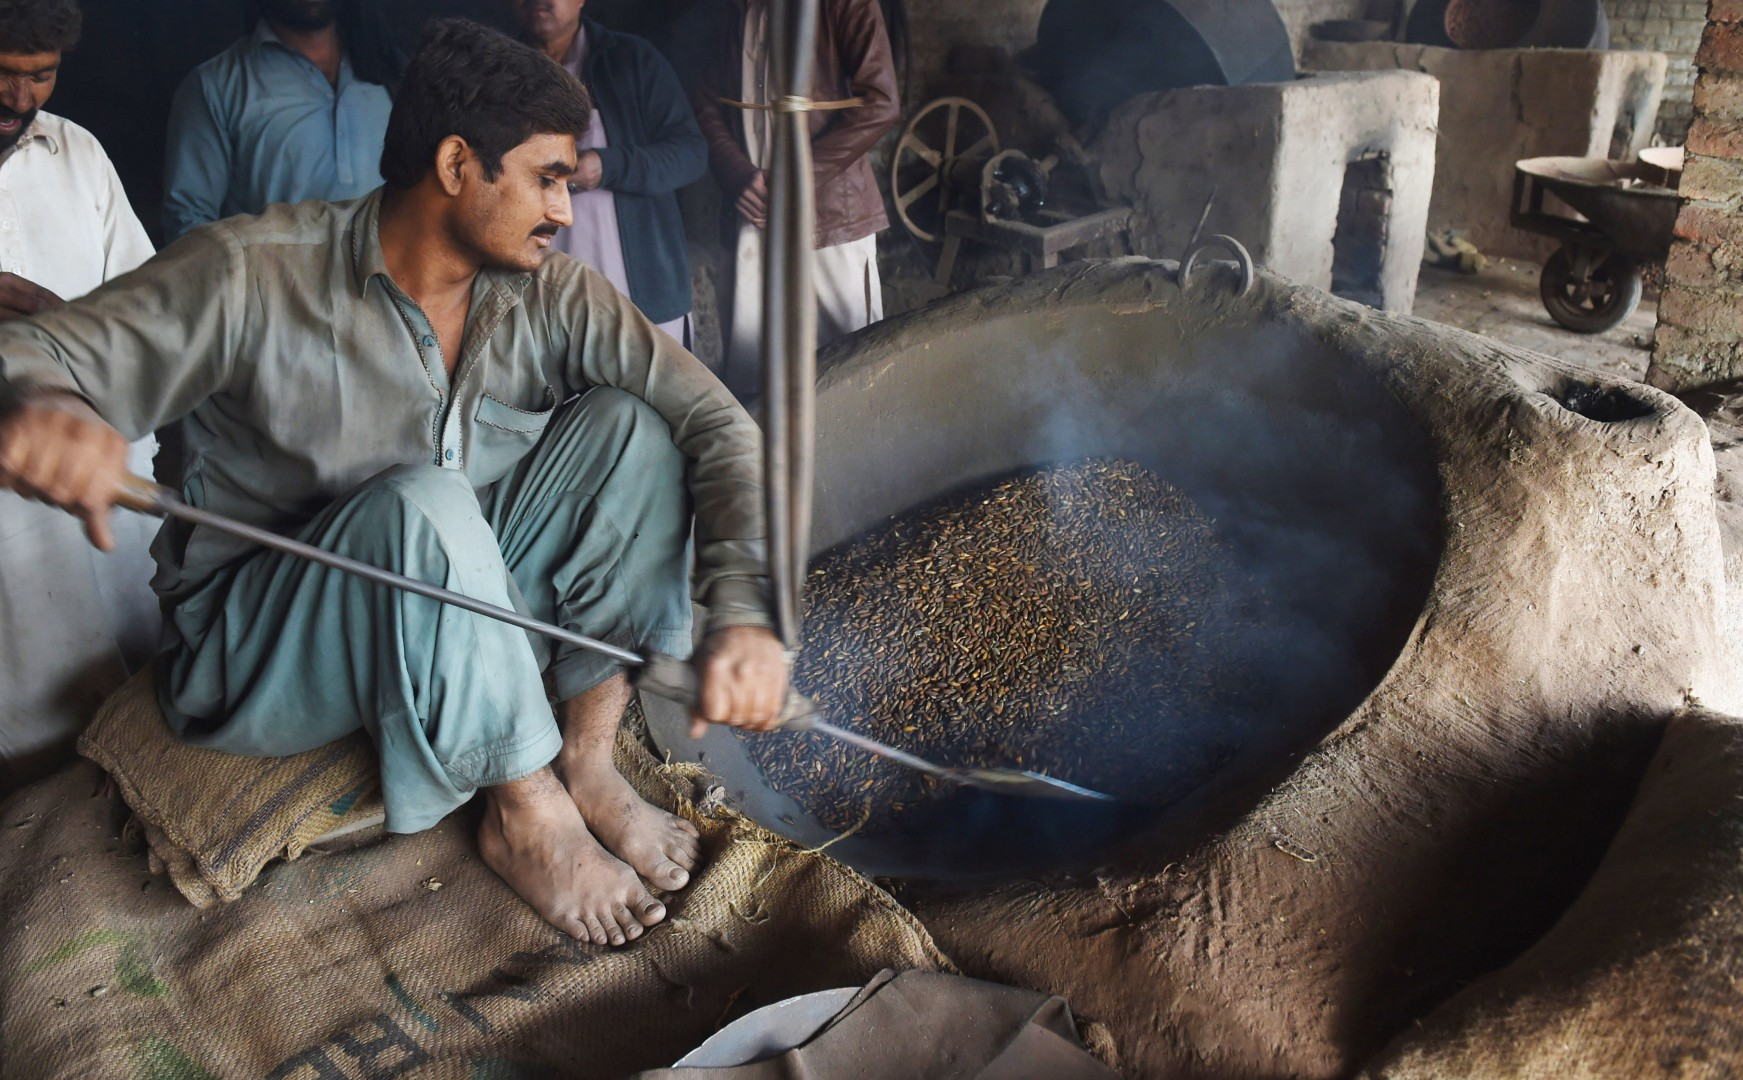 A Pakistani vendor roasts pine nuts at a market in Lahore on December 13, 2018. - Pakistan is among the world top pine nut producers. (Photo by ARIF ALI / AFP)